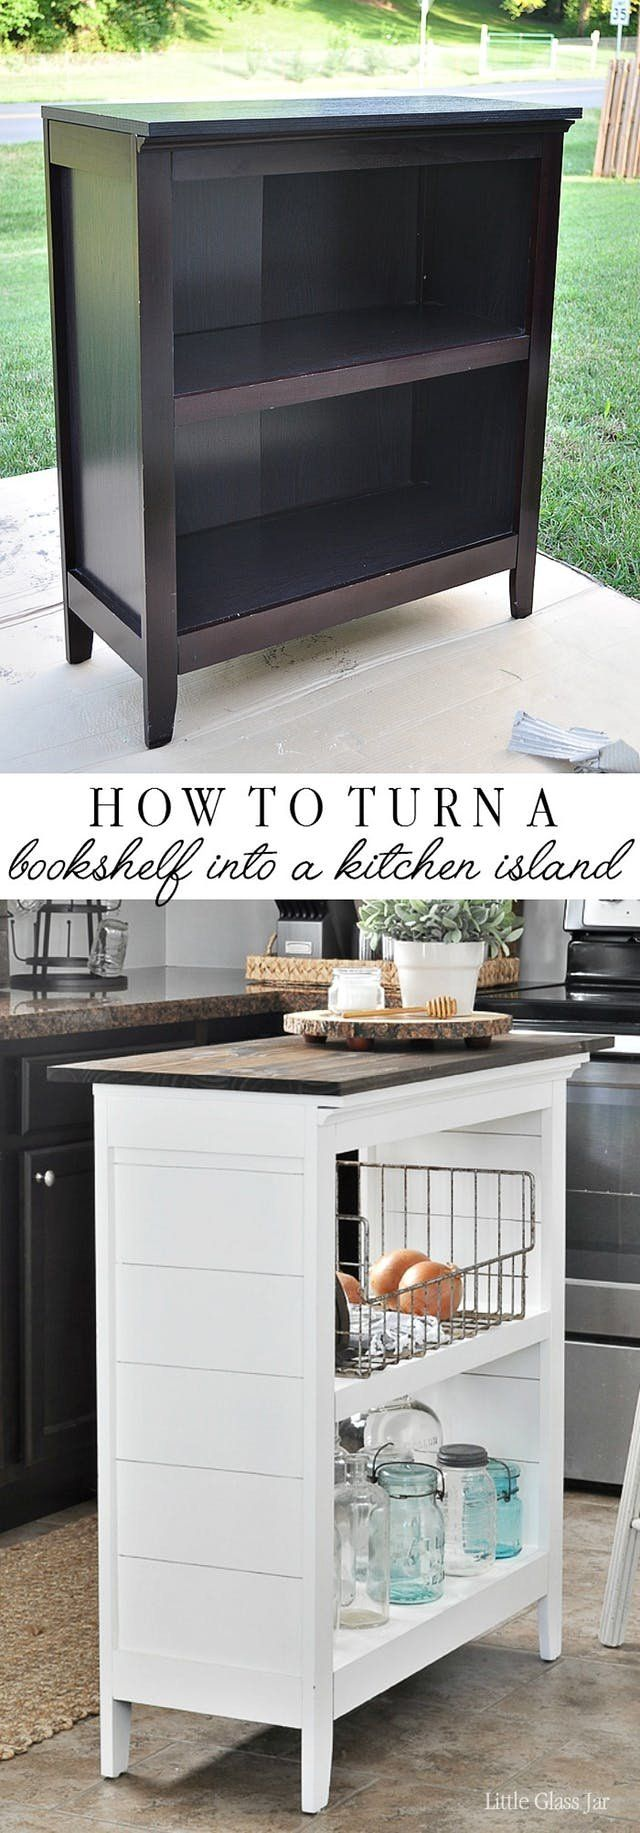 5 Smart Kitchen Islands in Small Spaces. Looking for ideas to make an island work in your small kitchen? Whether you need inspiration for rustic decor or something with seating, these layout and design ideas will get you thinking! Soe DIY options as well!